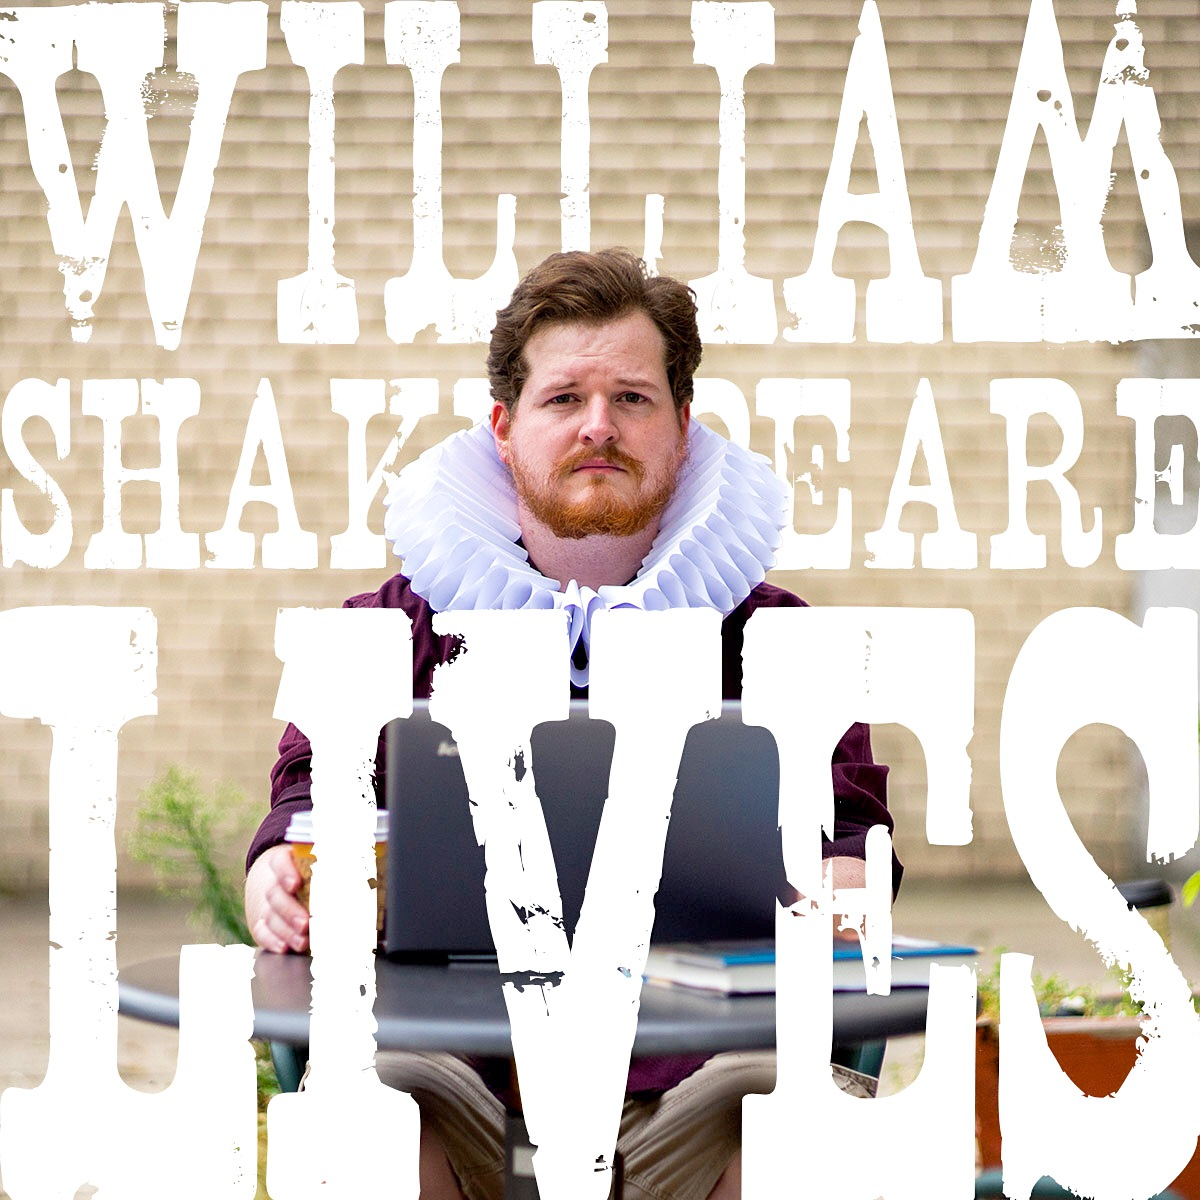 william shakespeare lives